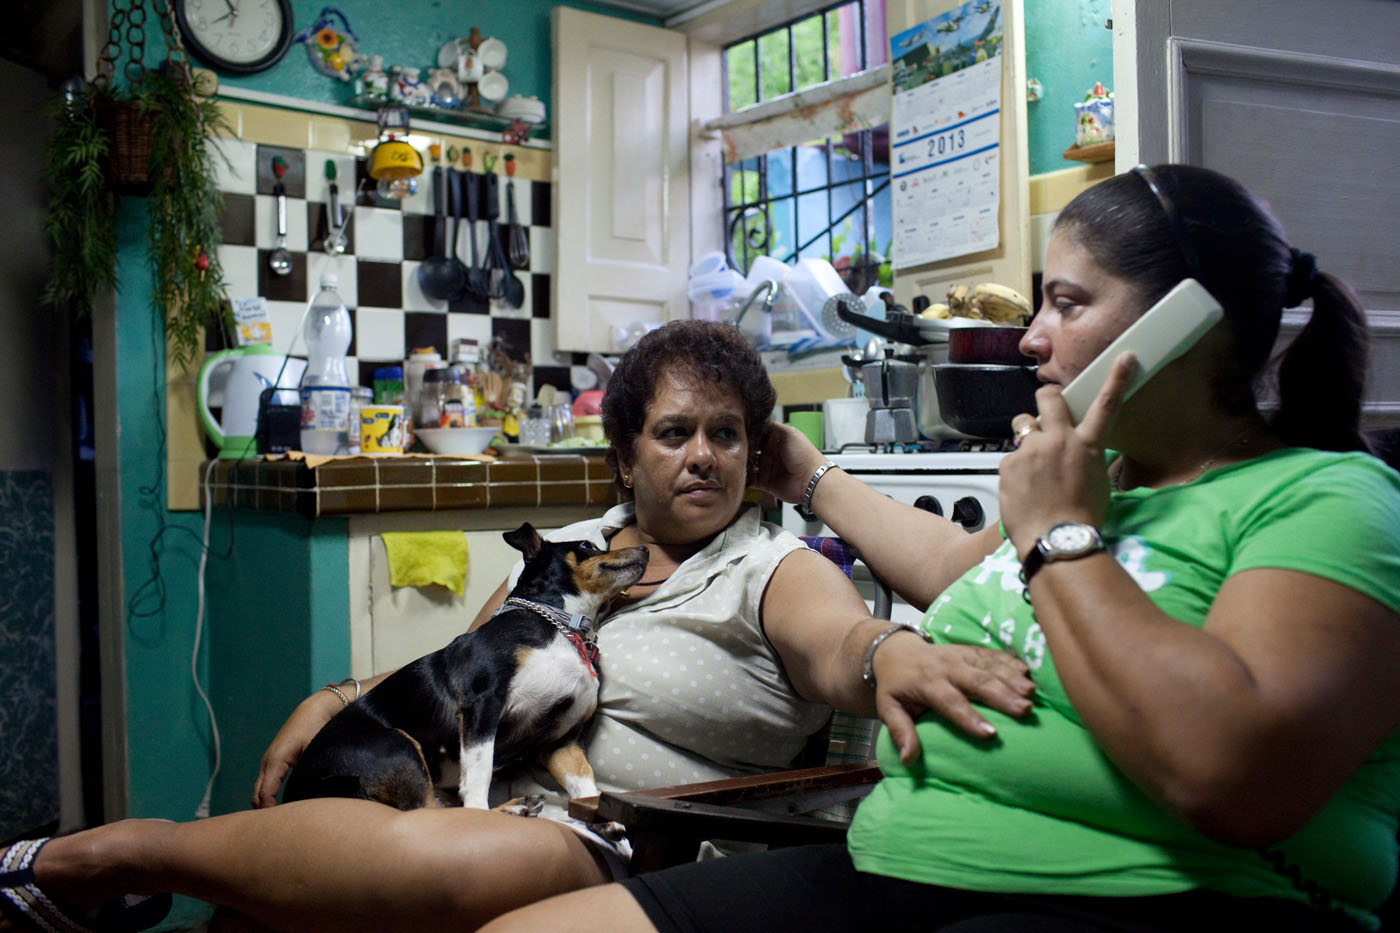 A  couple share a moment in their apartment. Both women are open about their relationship in their community and at work. A common worry amongst older couples is the issue of inheritance since gay marriage and civil unions have not been legalized and common law relationships between same-sex couples are not recognized.